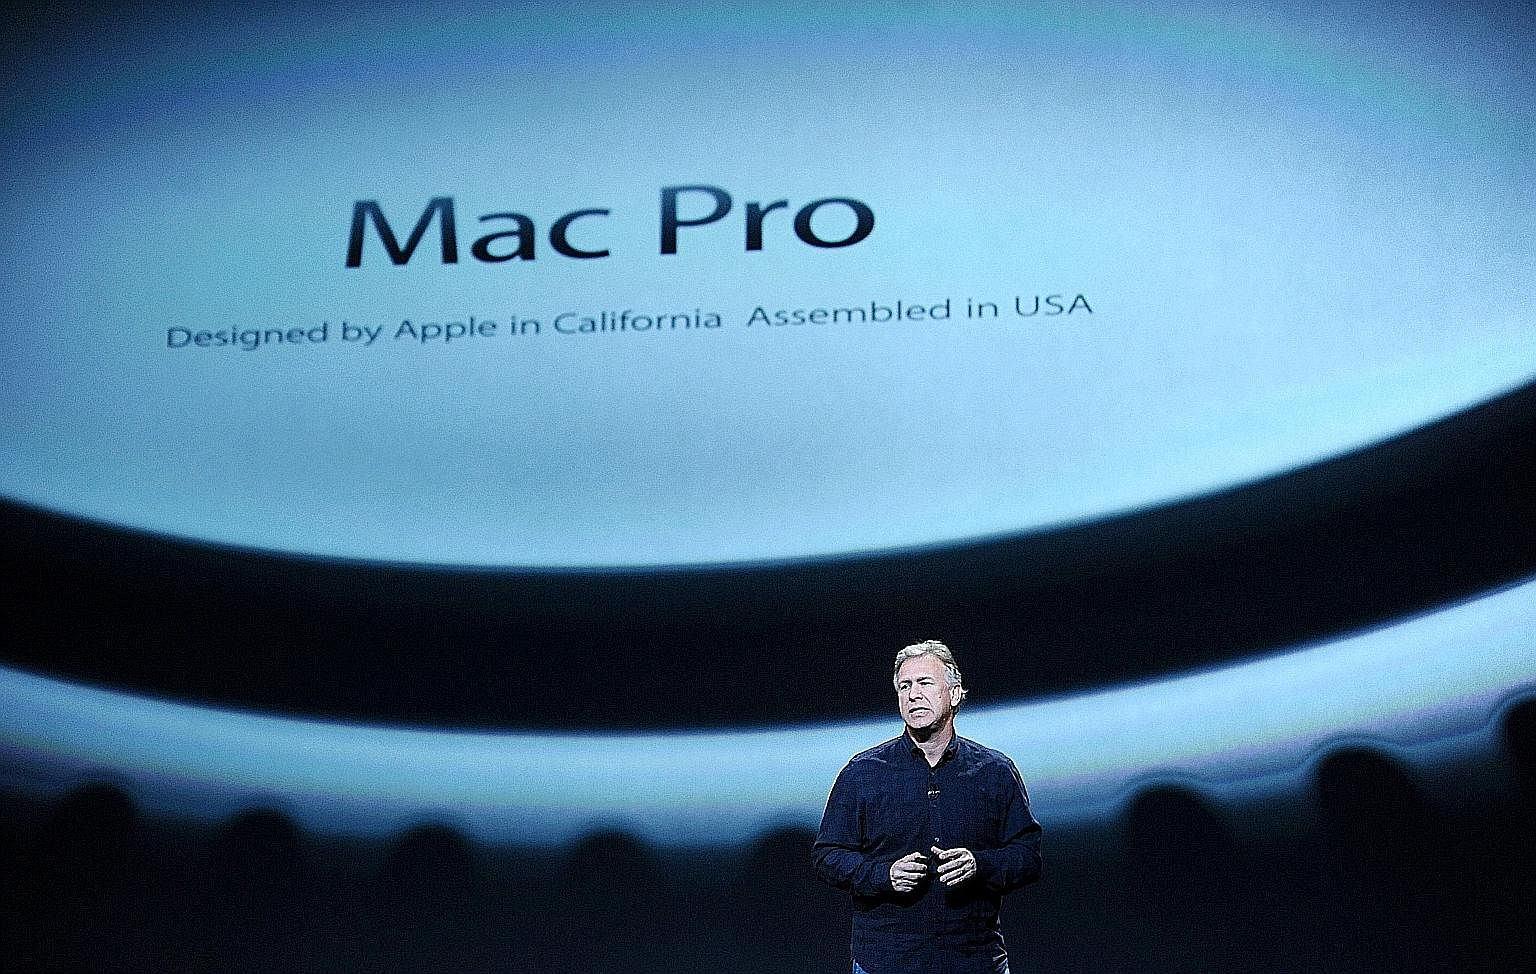 Mr Phil Schiller, Apple's senior vice-president of worldwide marketing, introducing the Mac Pro in October 2013. Last week, he and two of his senior colleagues revealed that the next Mac Pro will be modular.